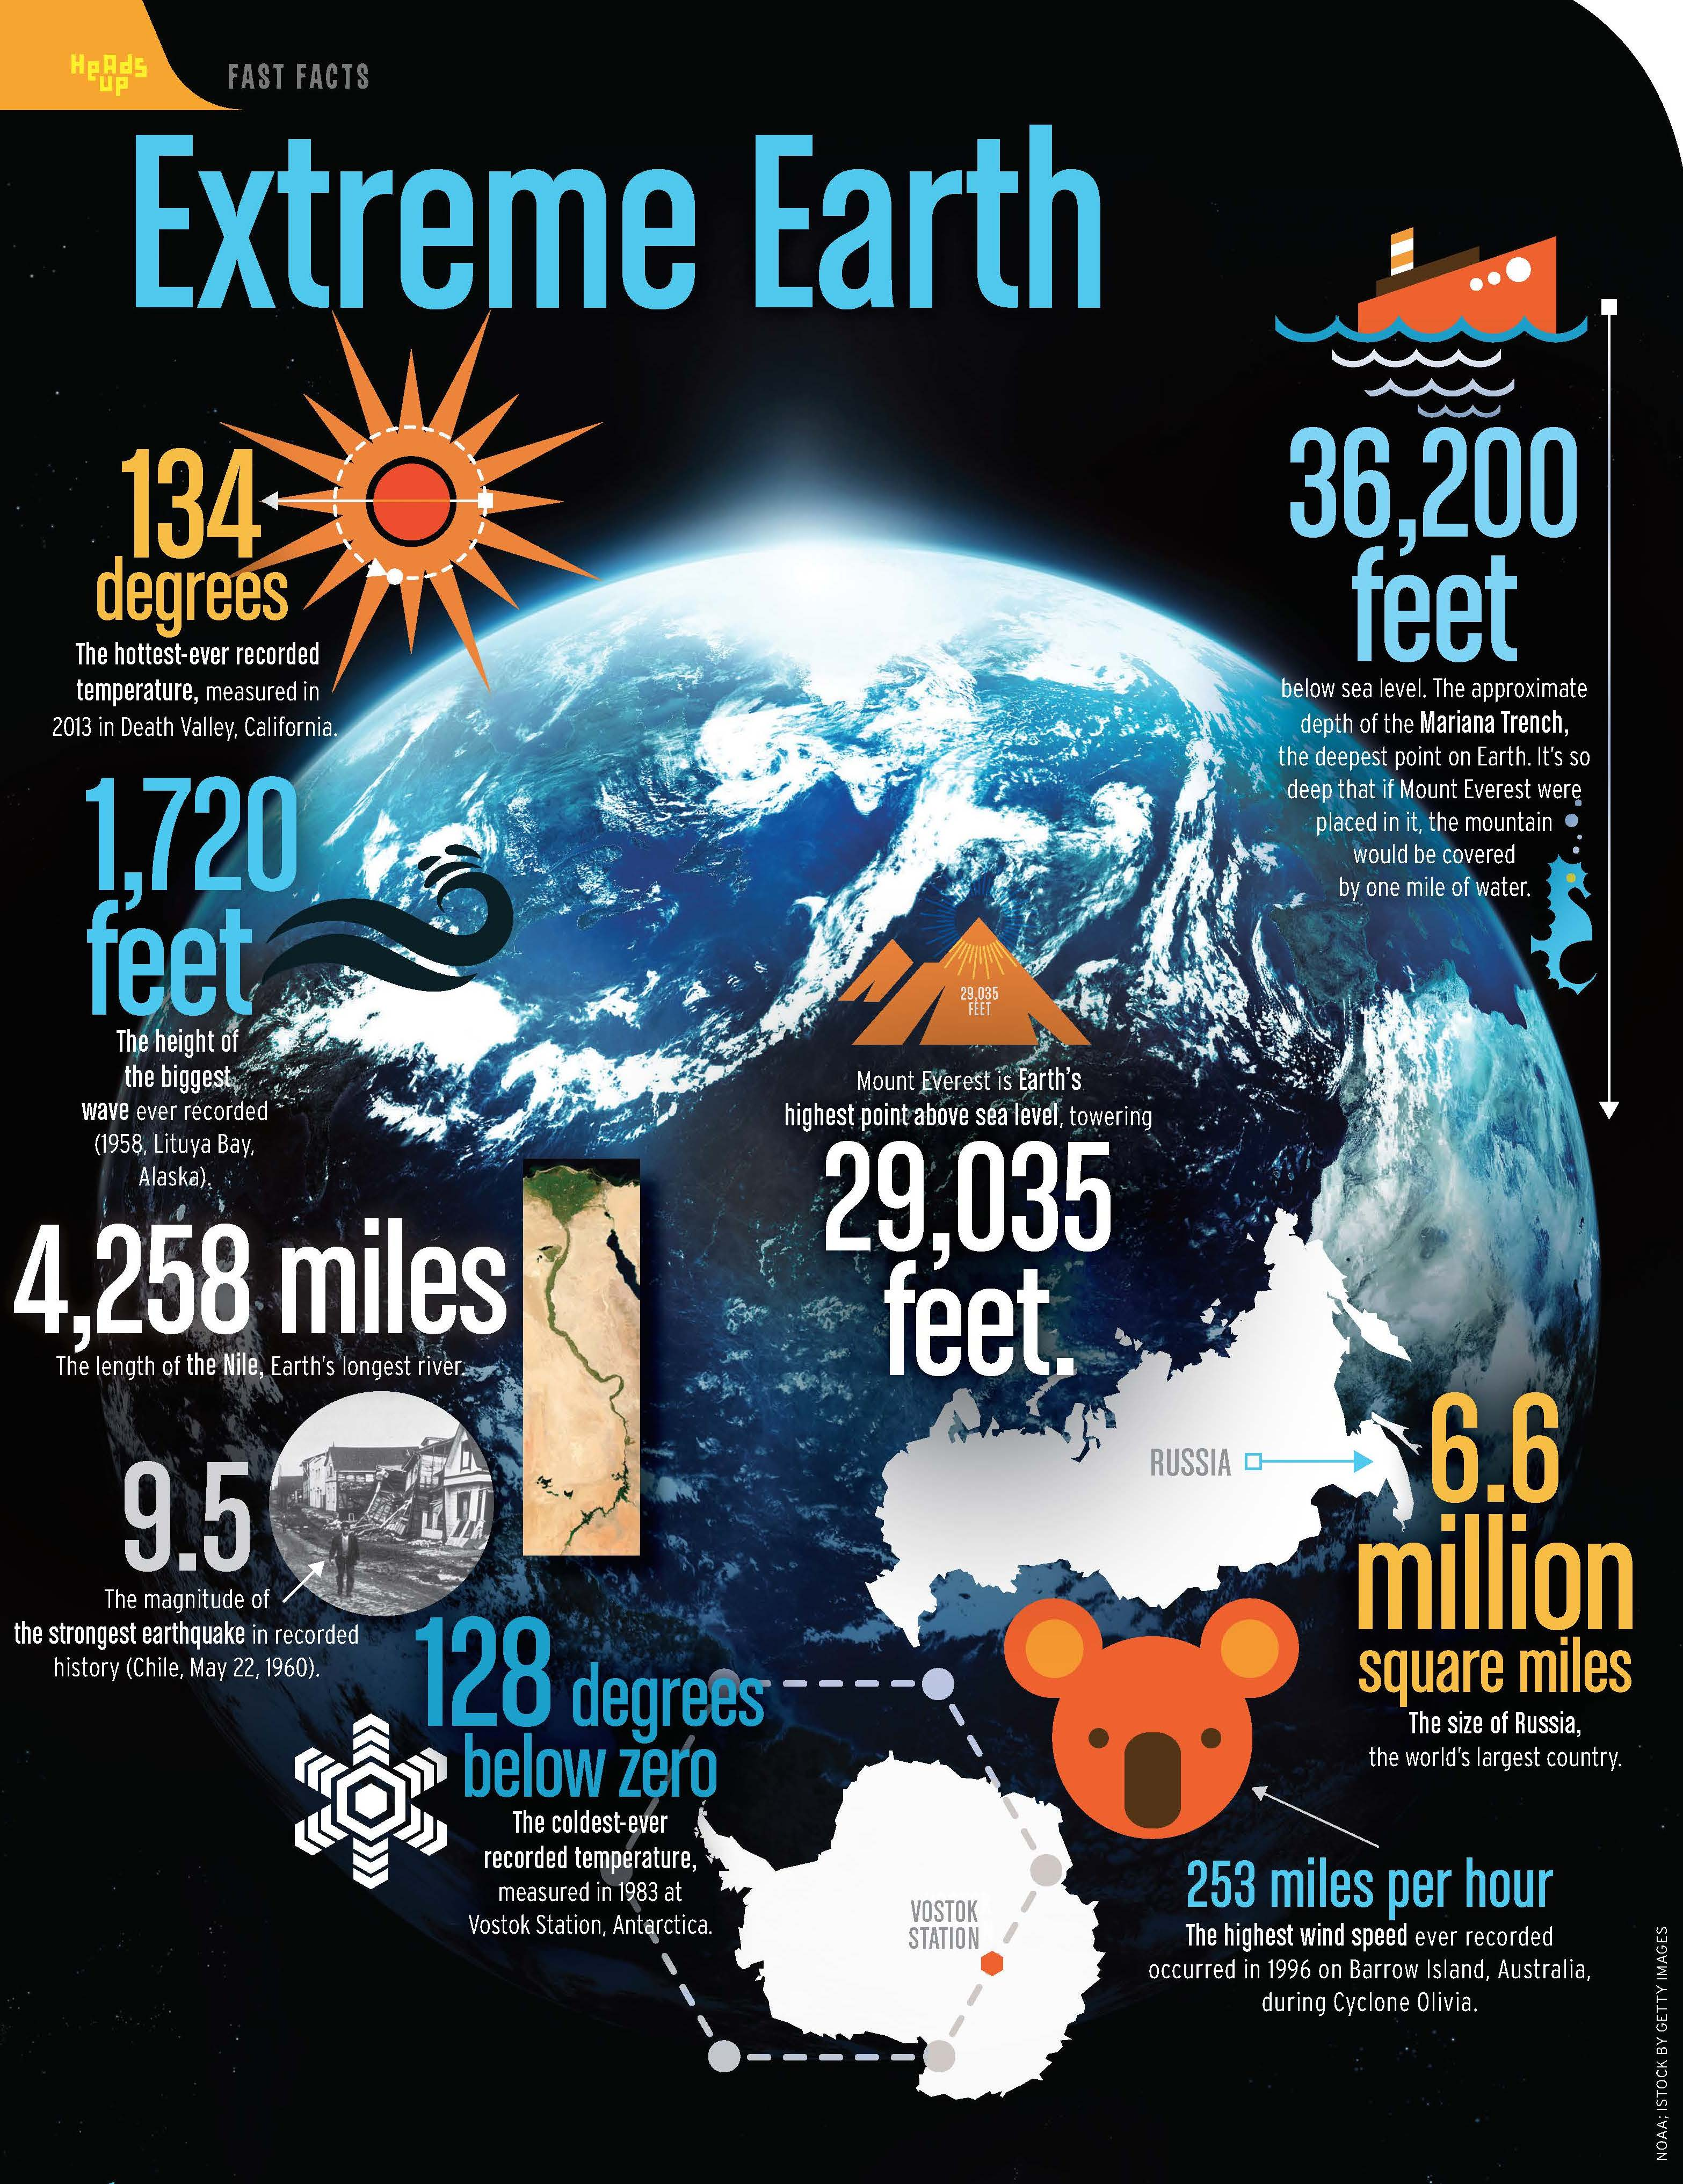 The Most Extreme Facts About Planet Earth